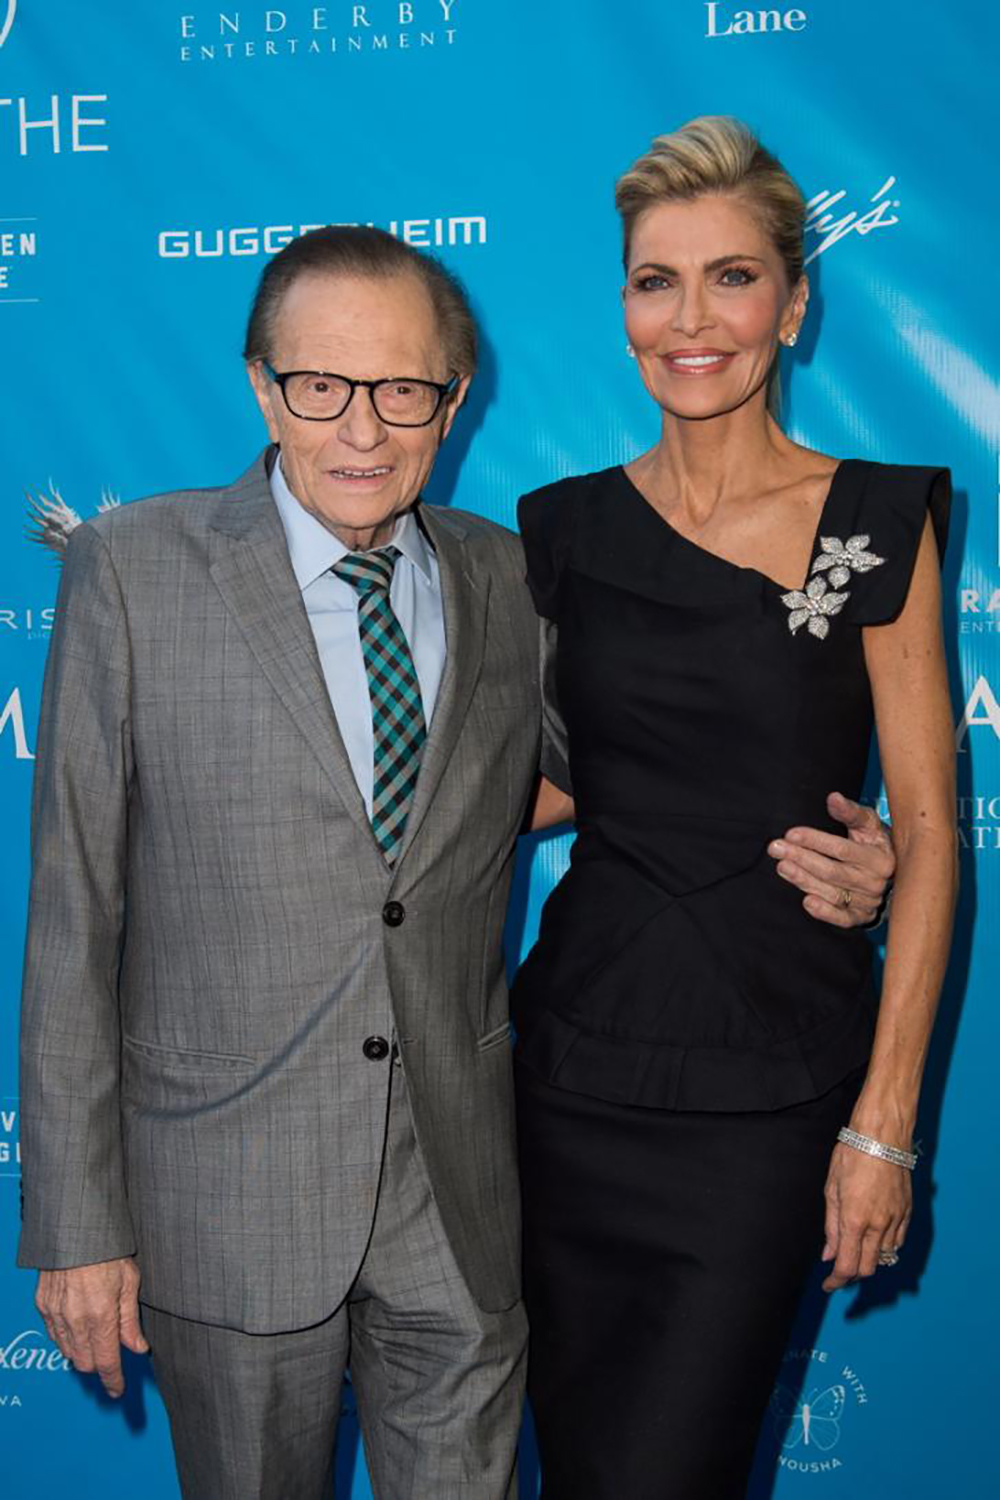 Larry King And Shawn King ©Emma McIntyre, Getty Images